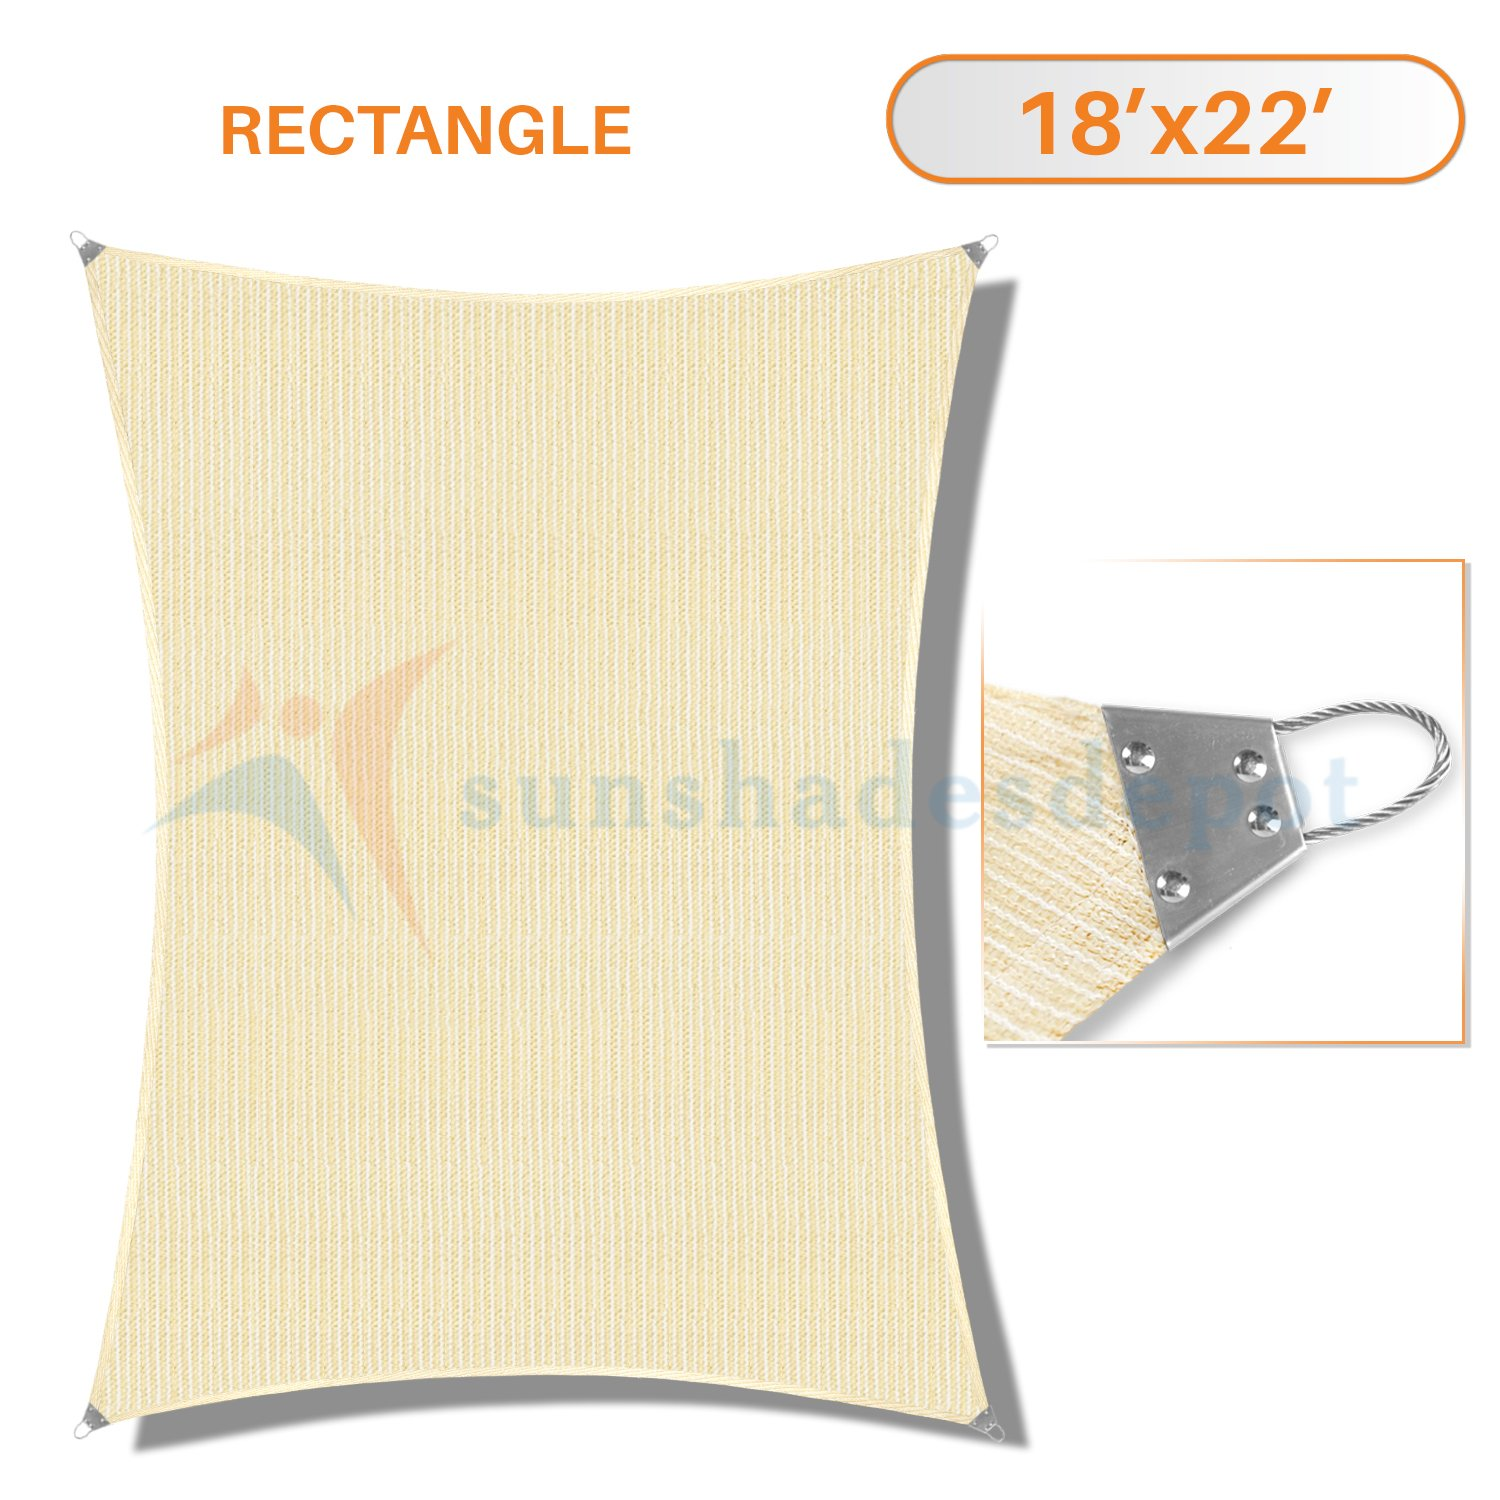 Sunshades Depot 18' x 22' Reinforcement large Sun Shade Beige Rectangle Heavy Duty Metal Spring / Steel Wire Outdoor Permeable UV Block Fabric Durable Steel Wire Strengthen 160 GSM